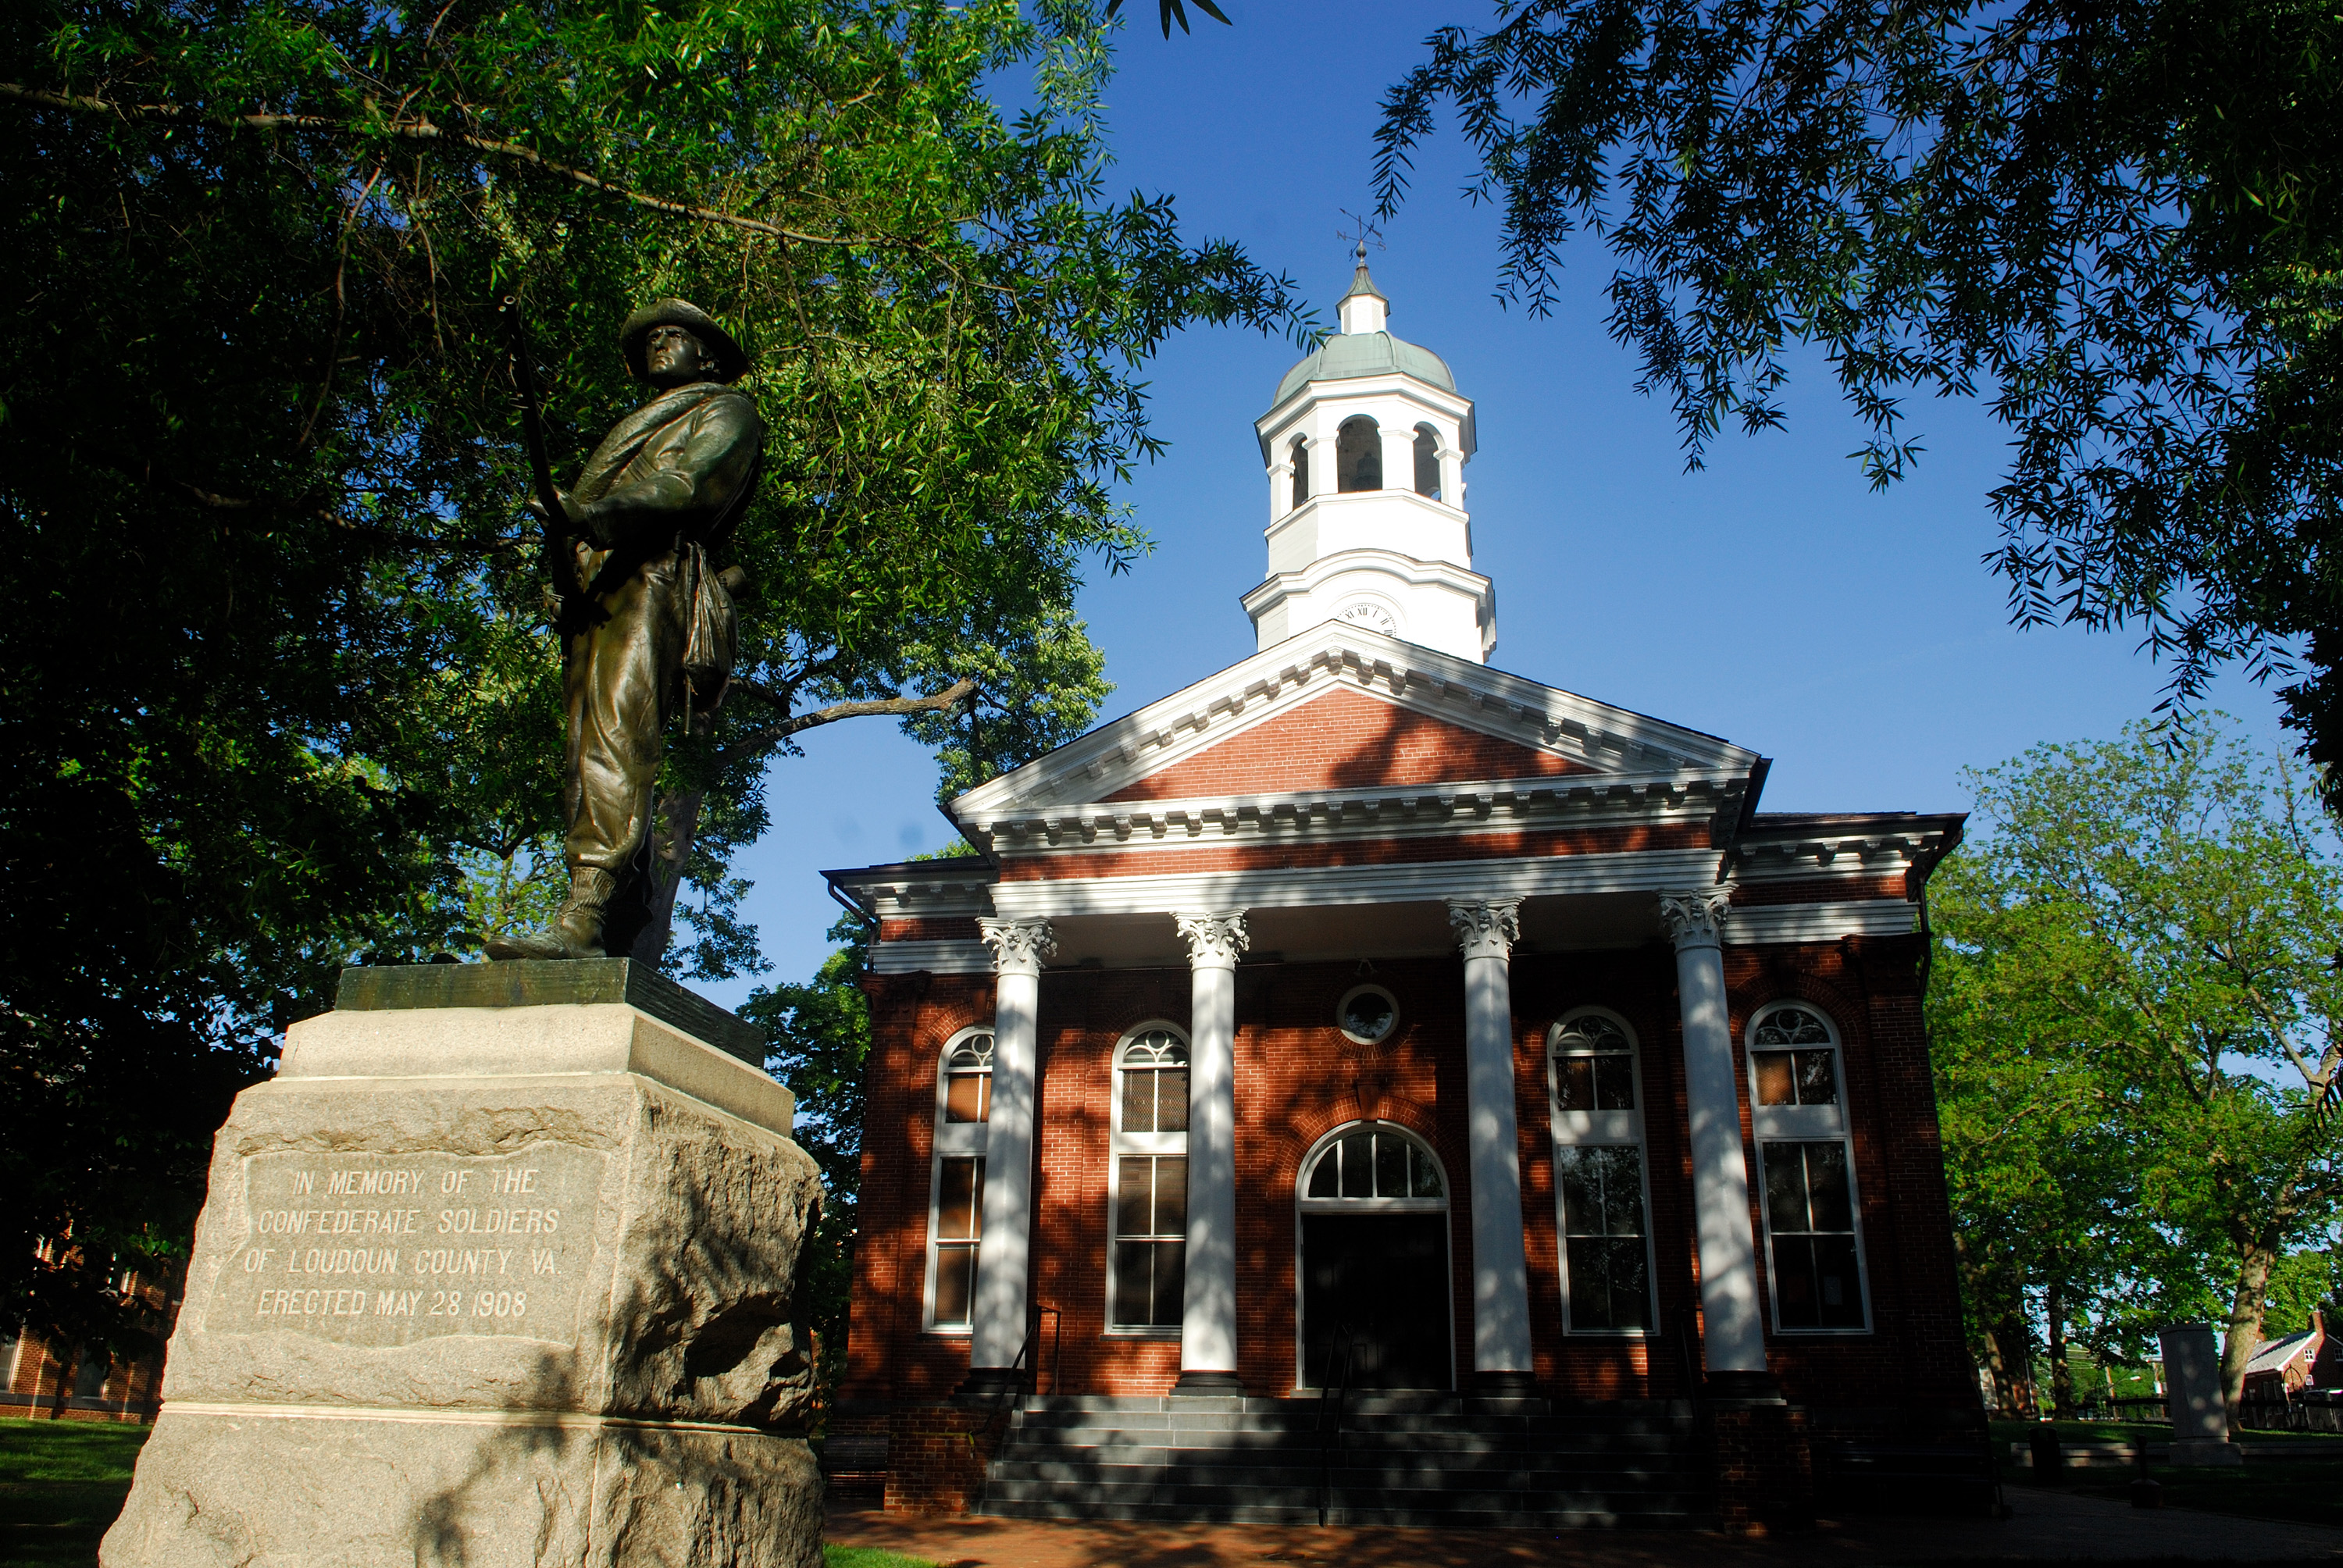 Should Leesburg become a city? It's complicated